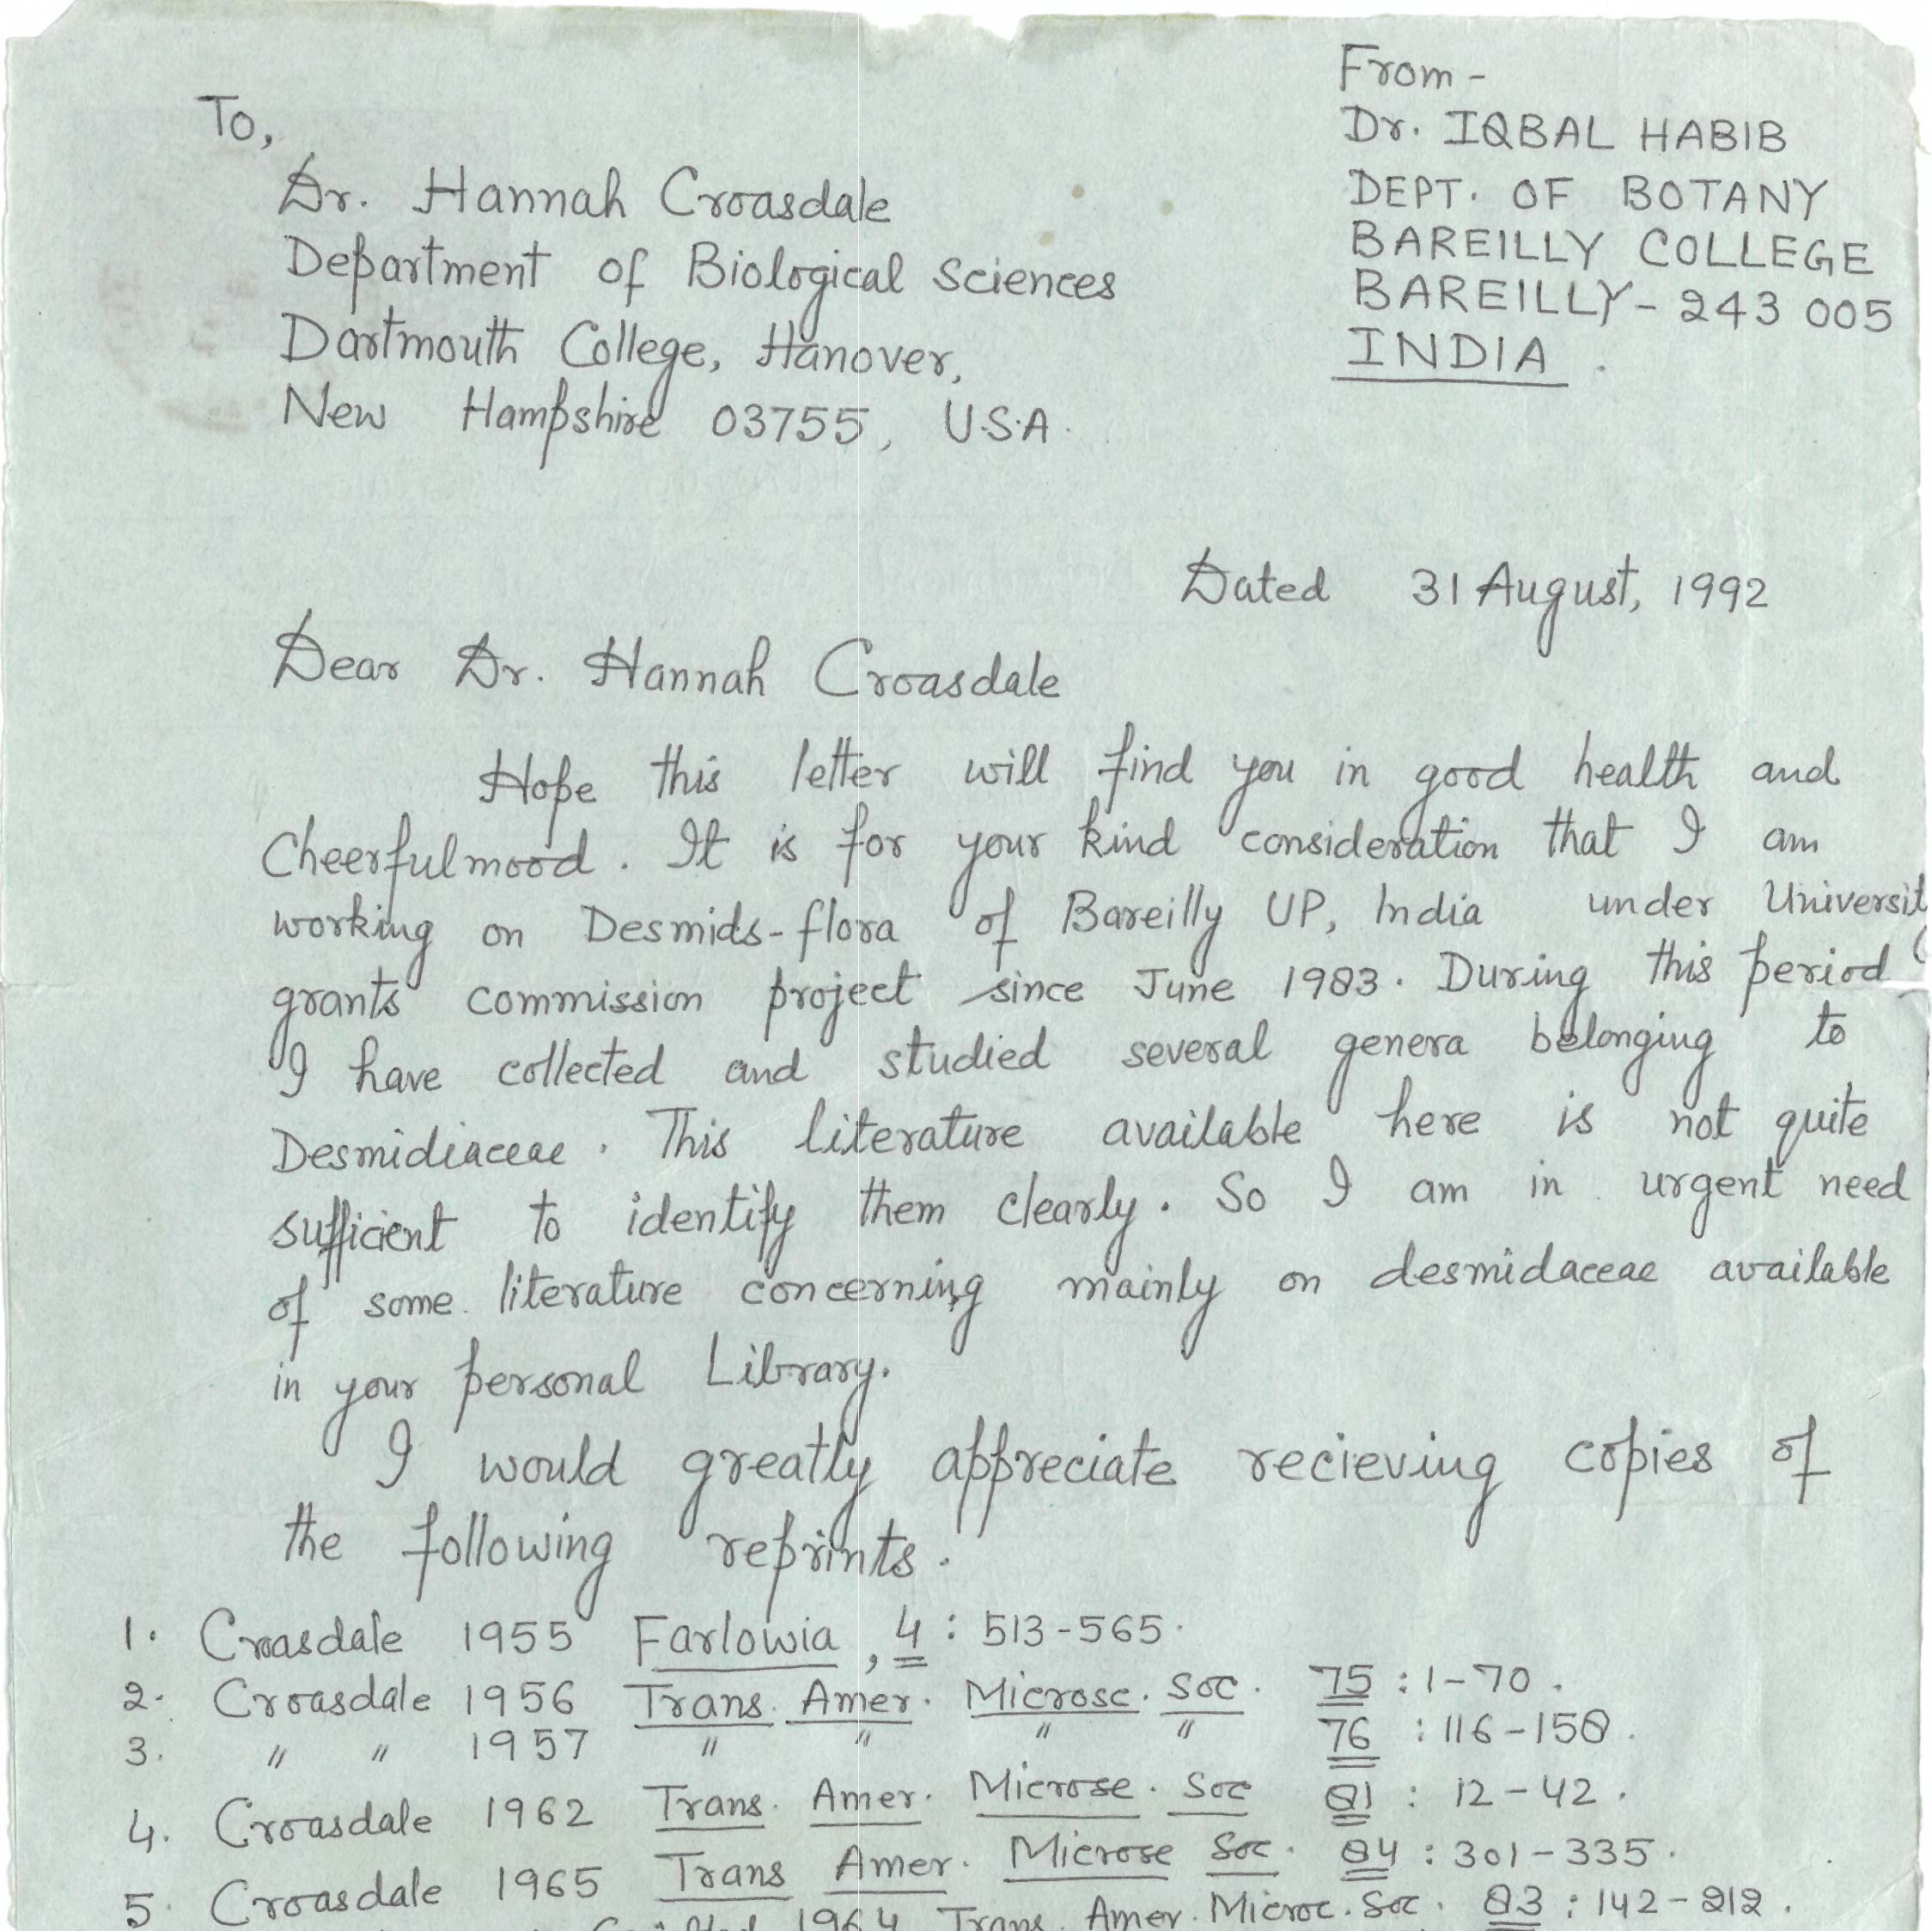 An Indian scholar writes Prof. Croasdale to request copies of literature on desmids from her personal library, as well as her recent publication on the subject in 1992. This letter serves as an excellent example that Croasdale was known the world over for her work in the field of phycology.